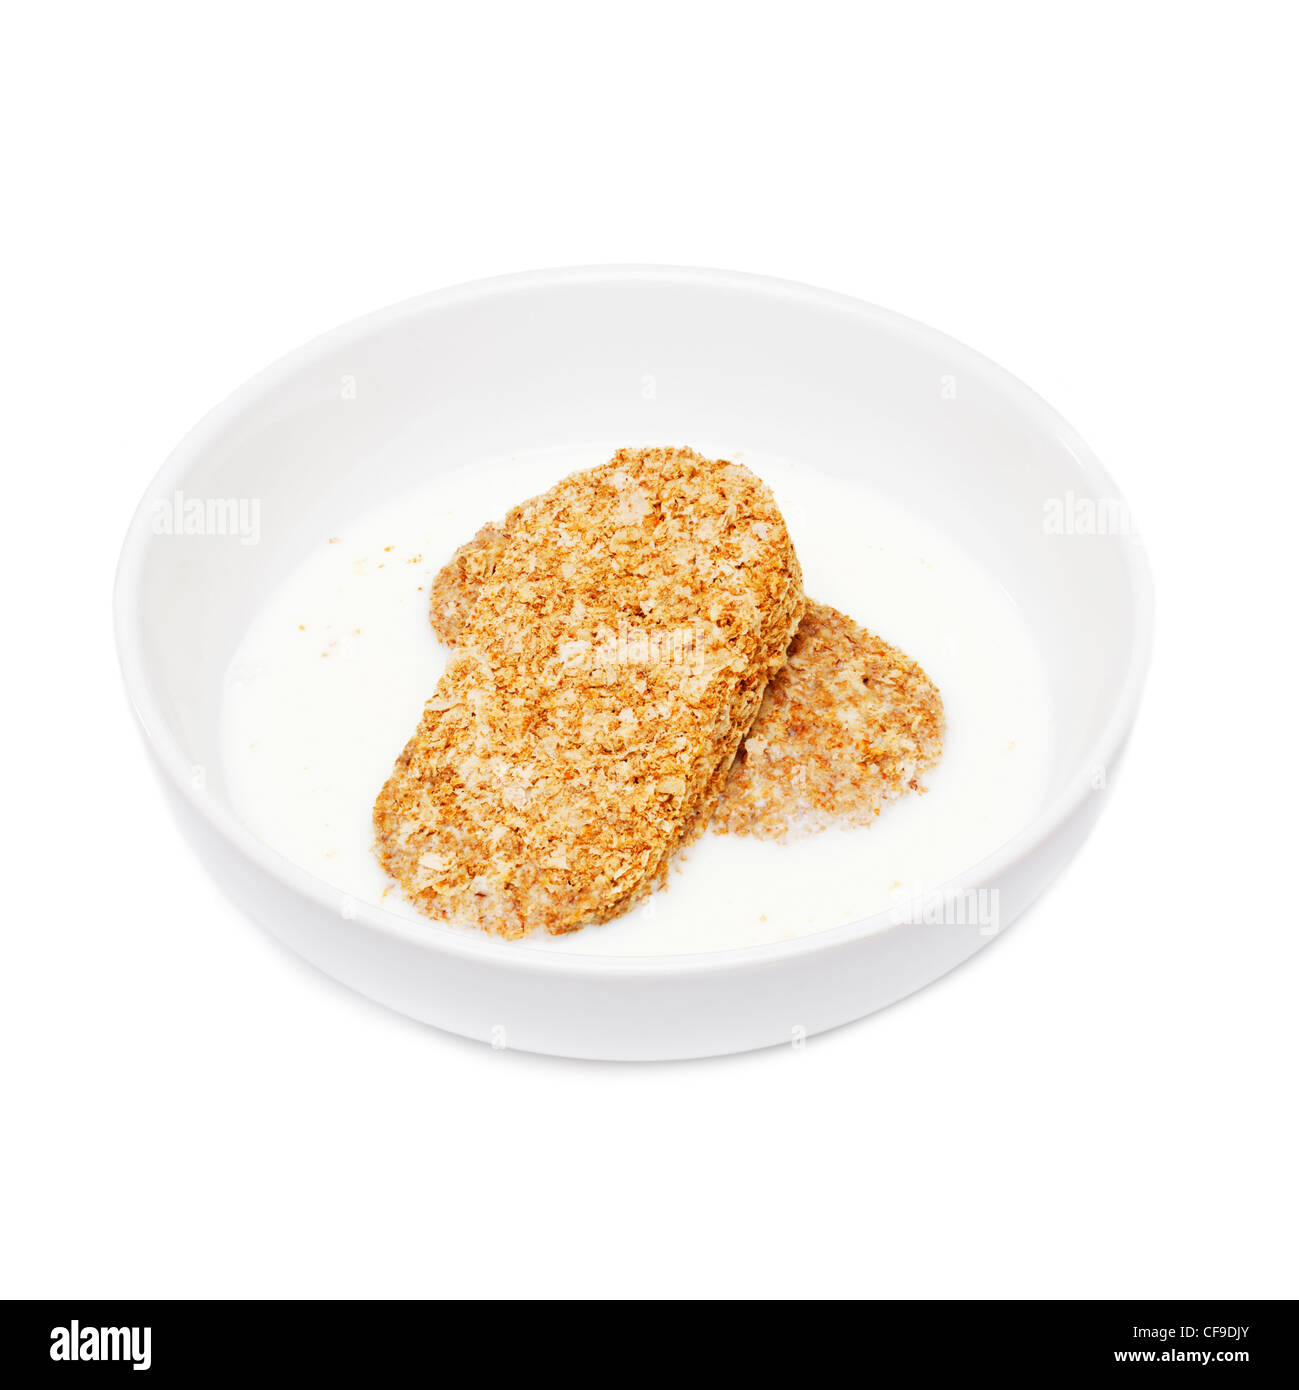 Weetabix breakfast cereal in a white bowl with milk - Stock Image